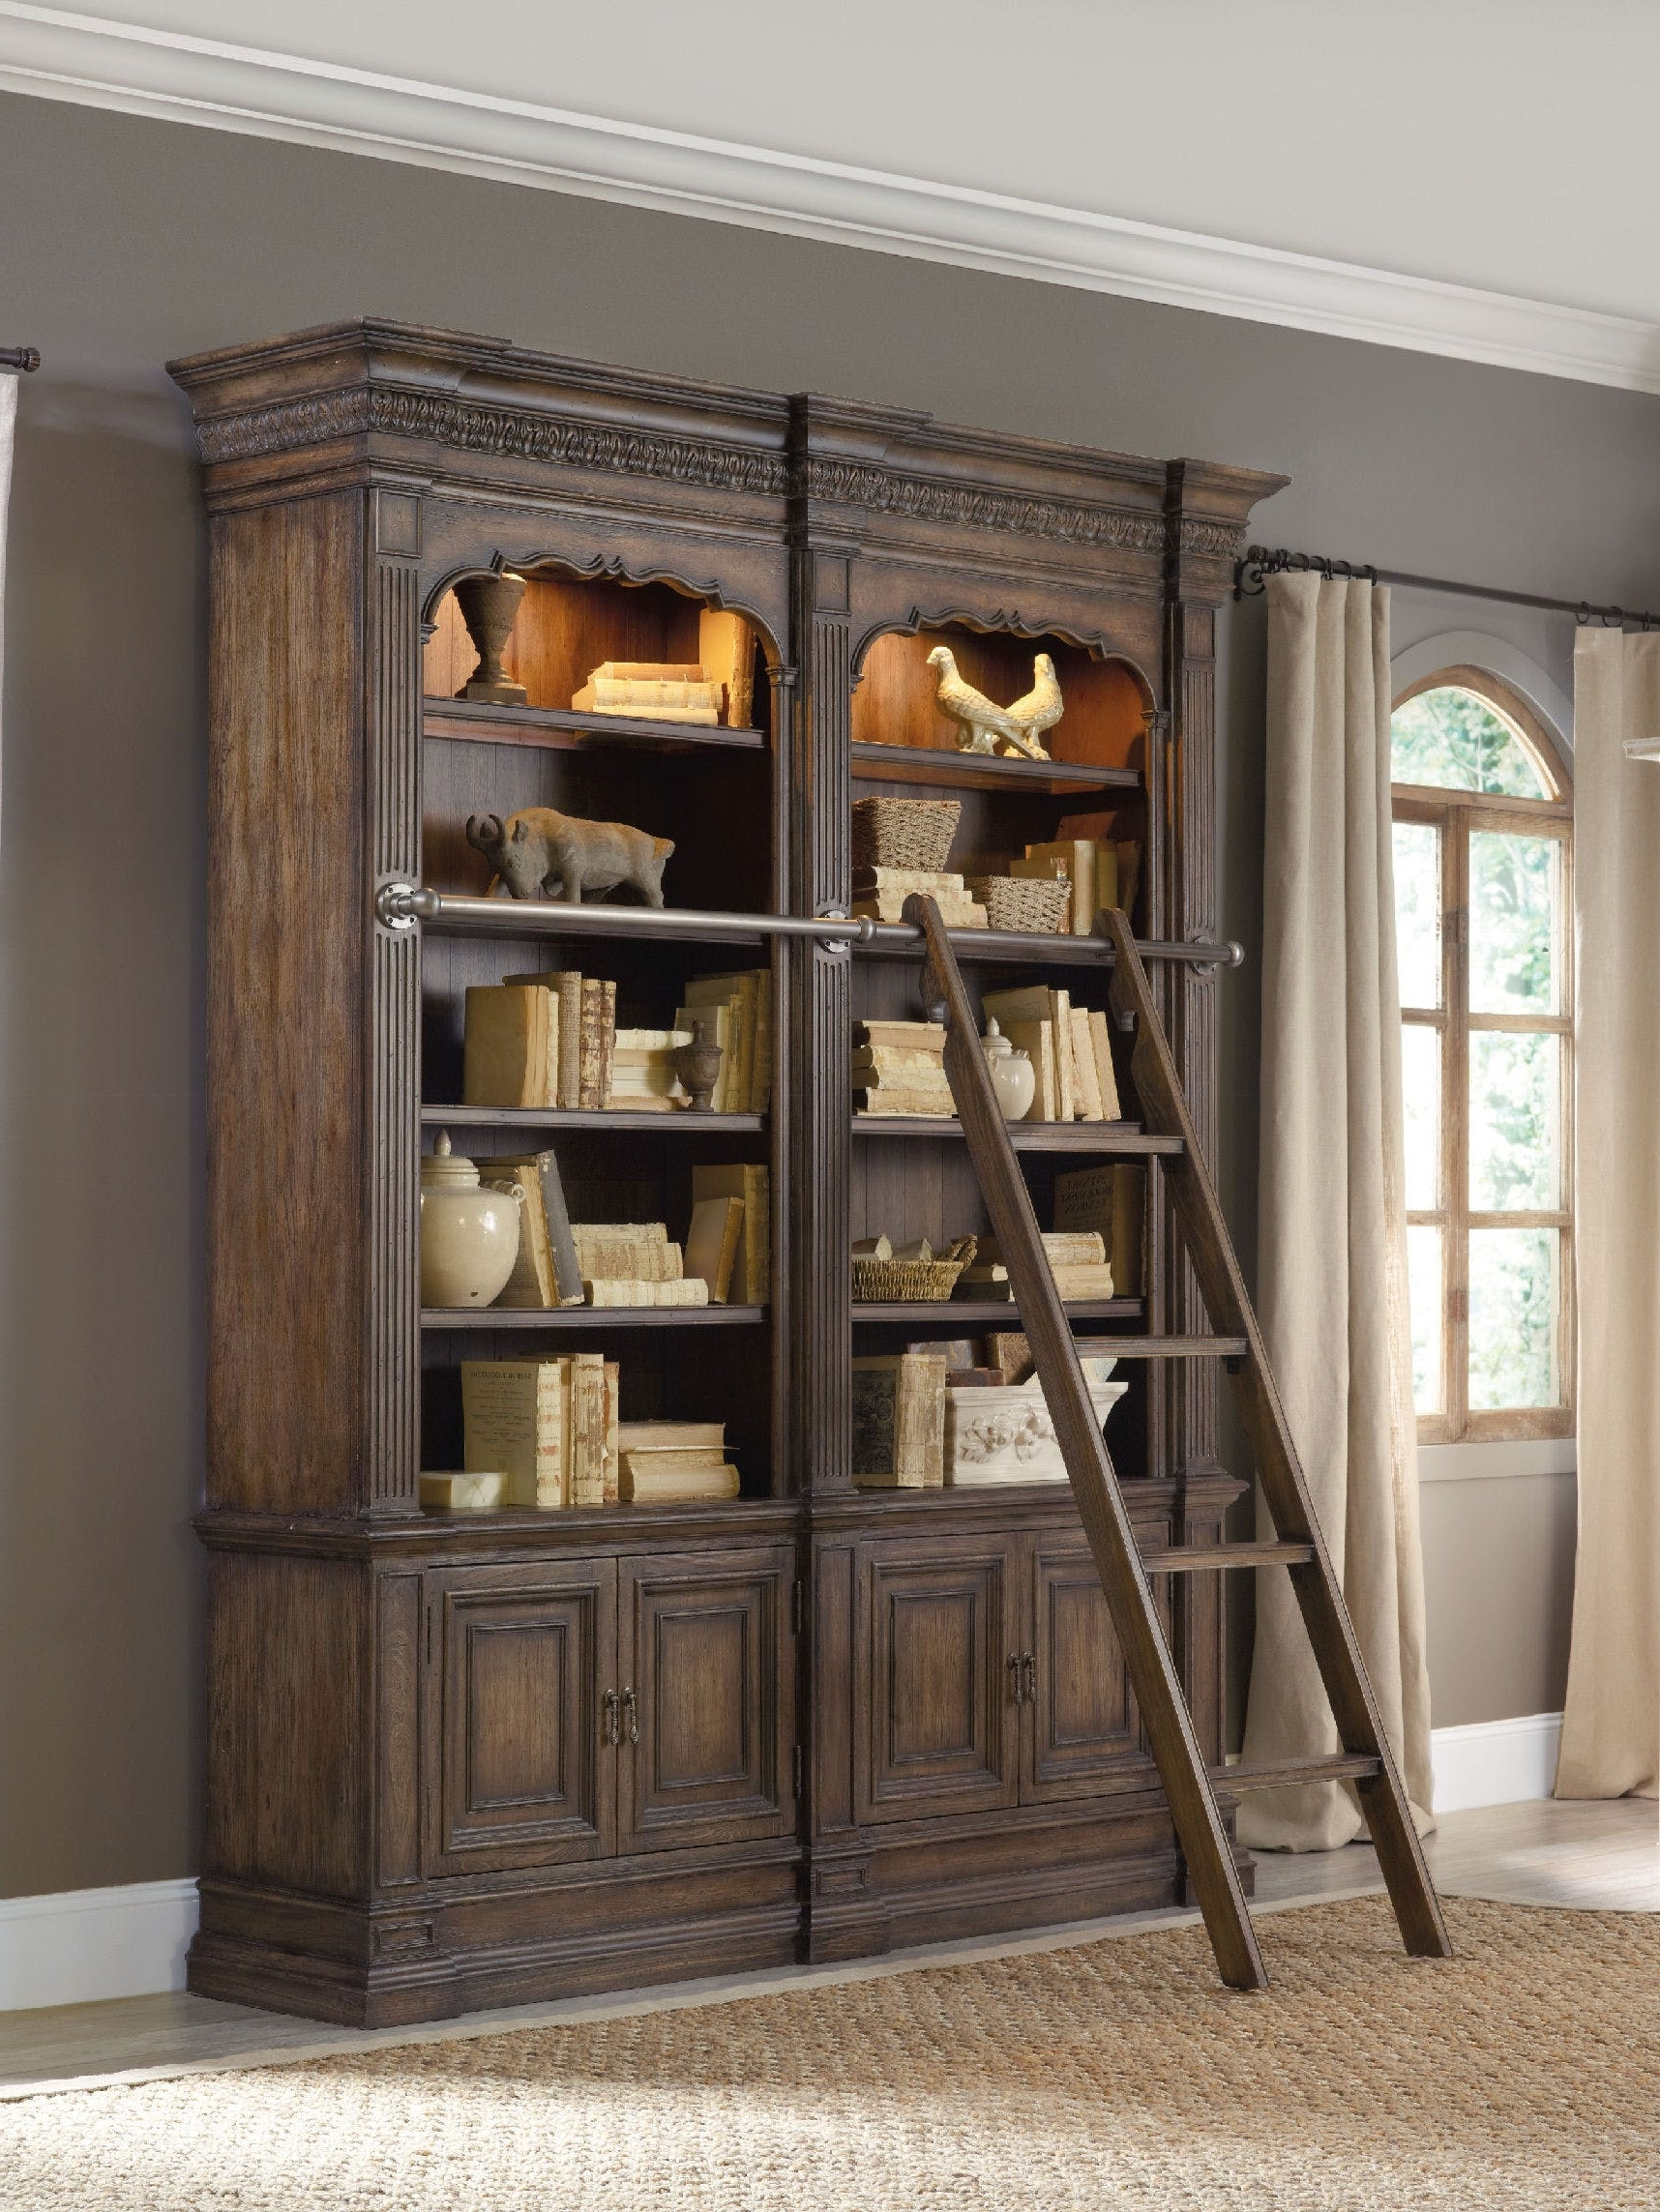 2018 Bookcases With Ladder With Bookcase Astounding Library With Ladder Photo Concept Plans Wall (View 4 of 15)